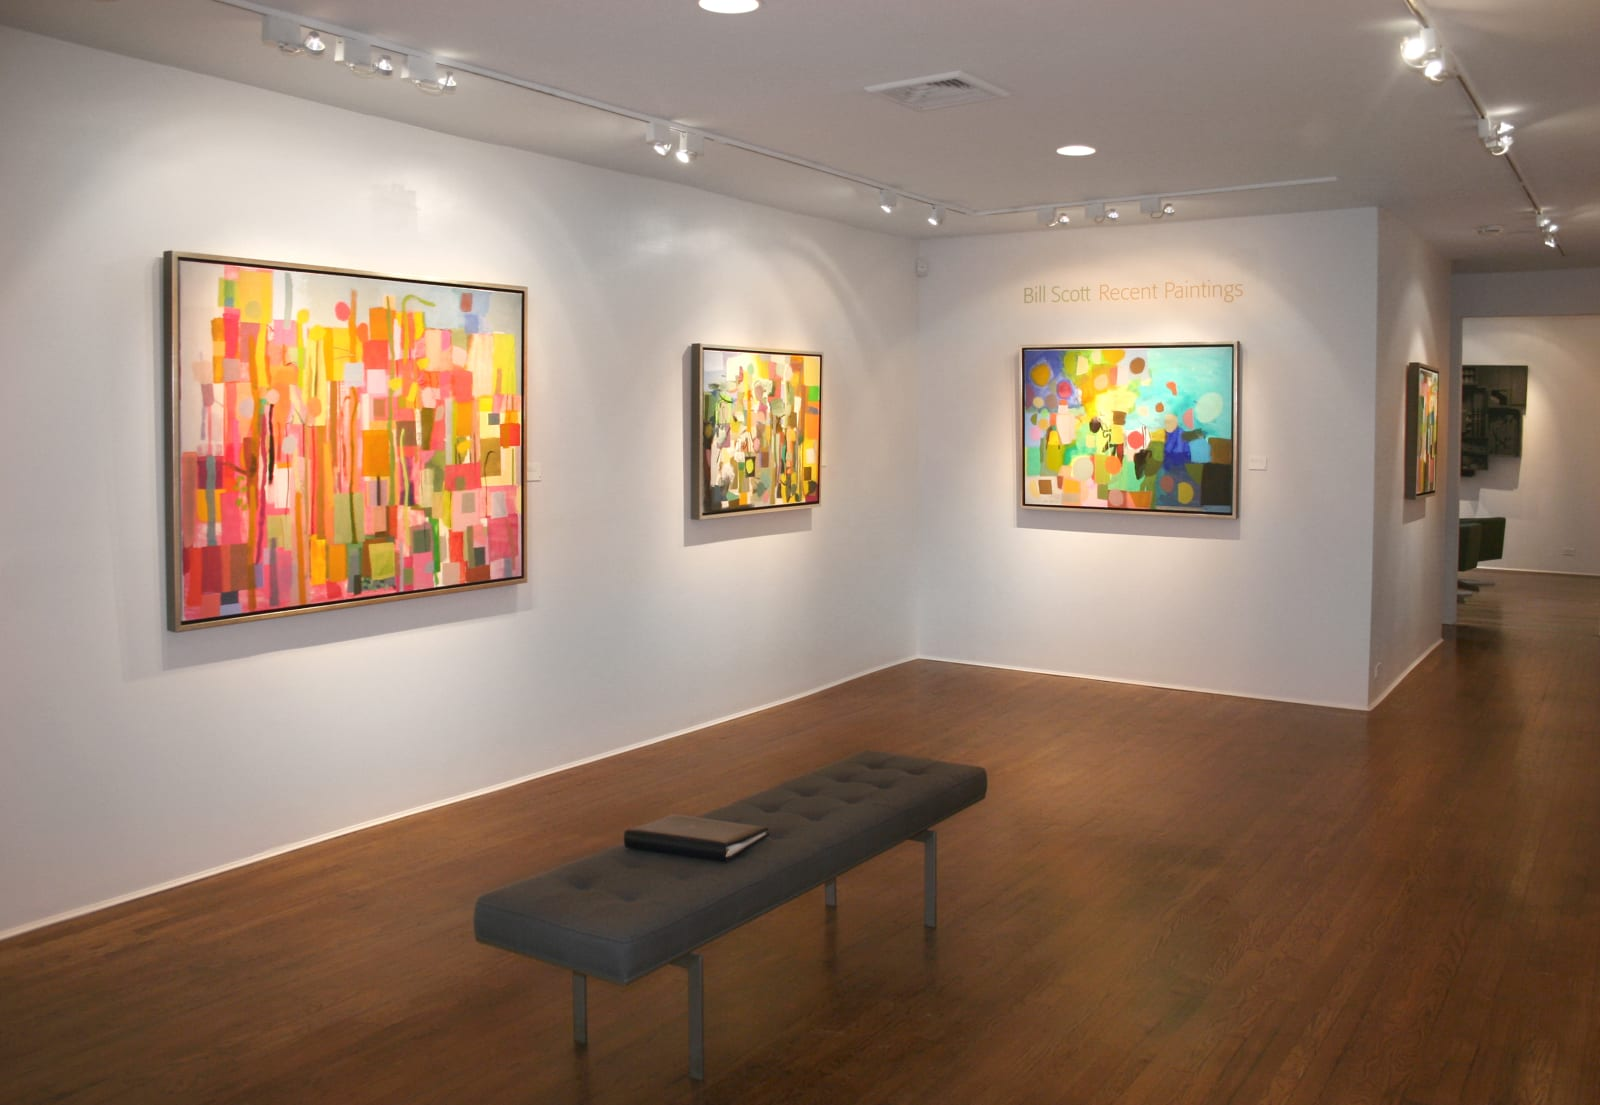 Installation view: Bill Scott: Recent Paintings